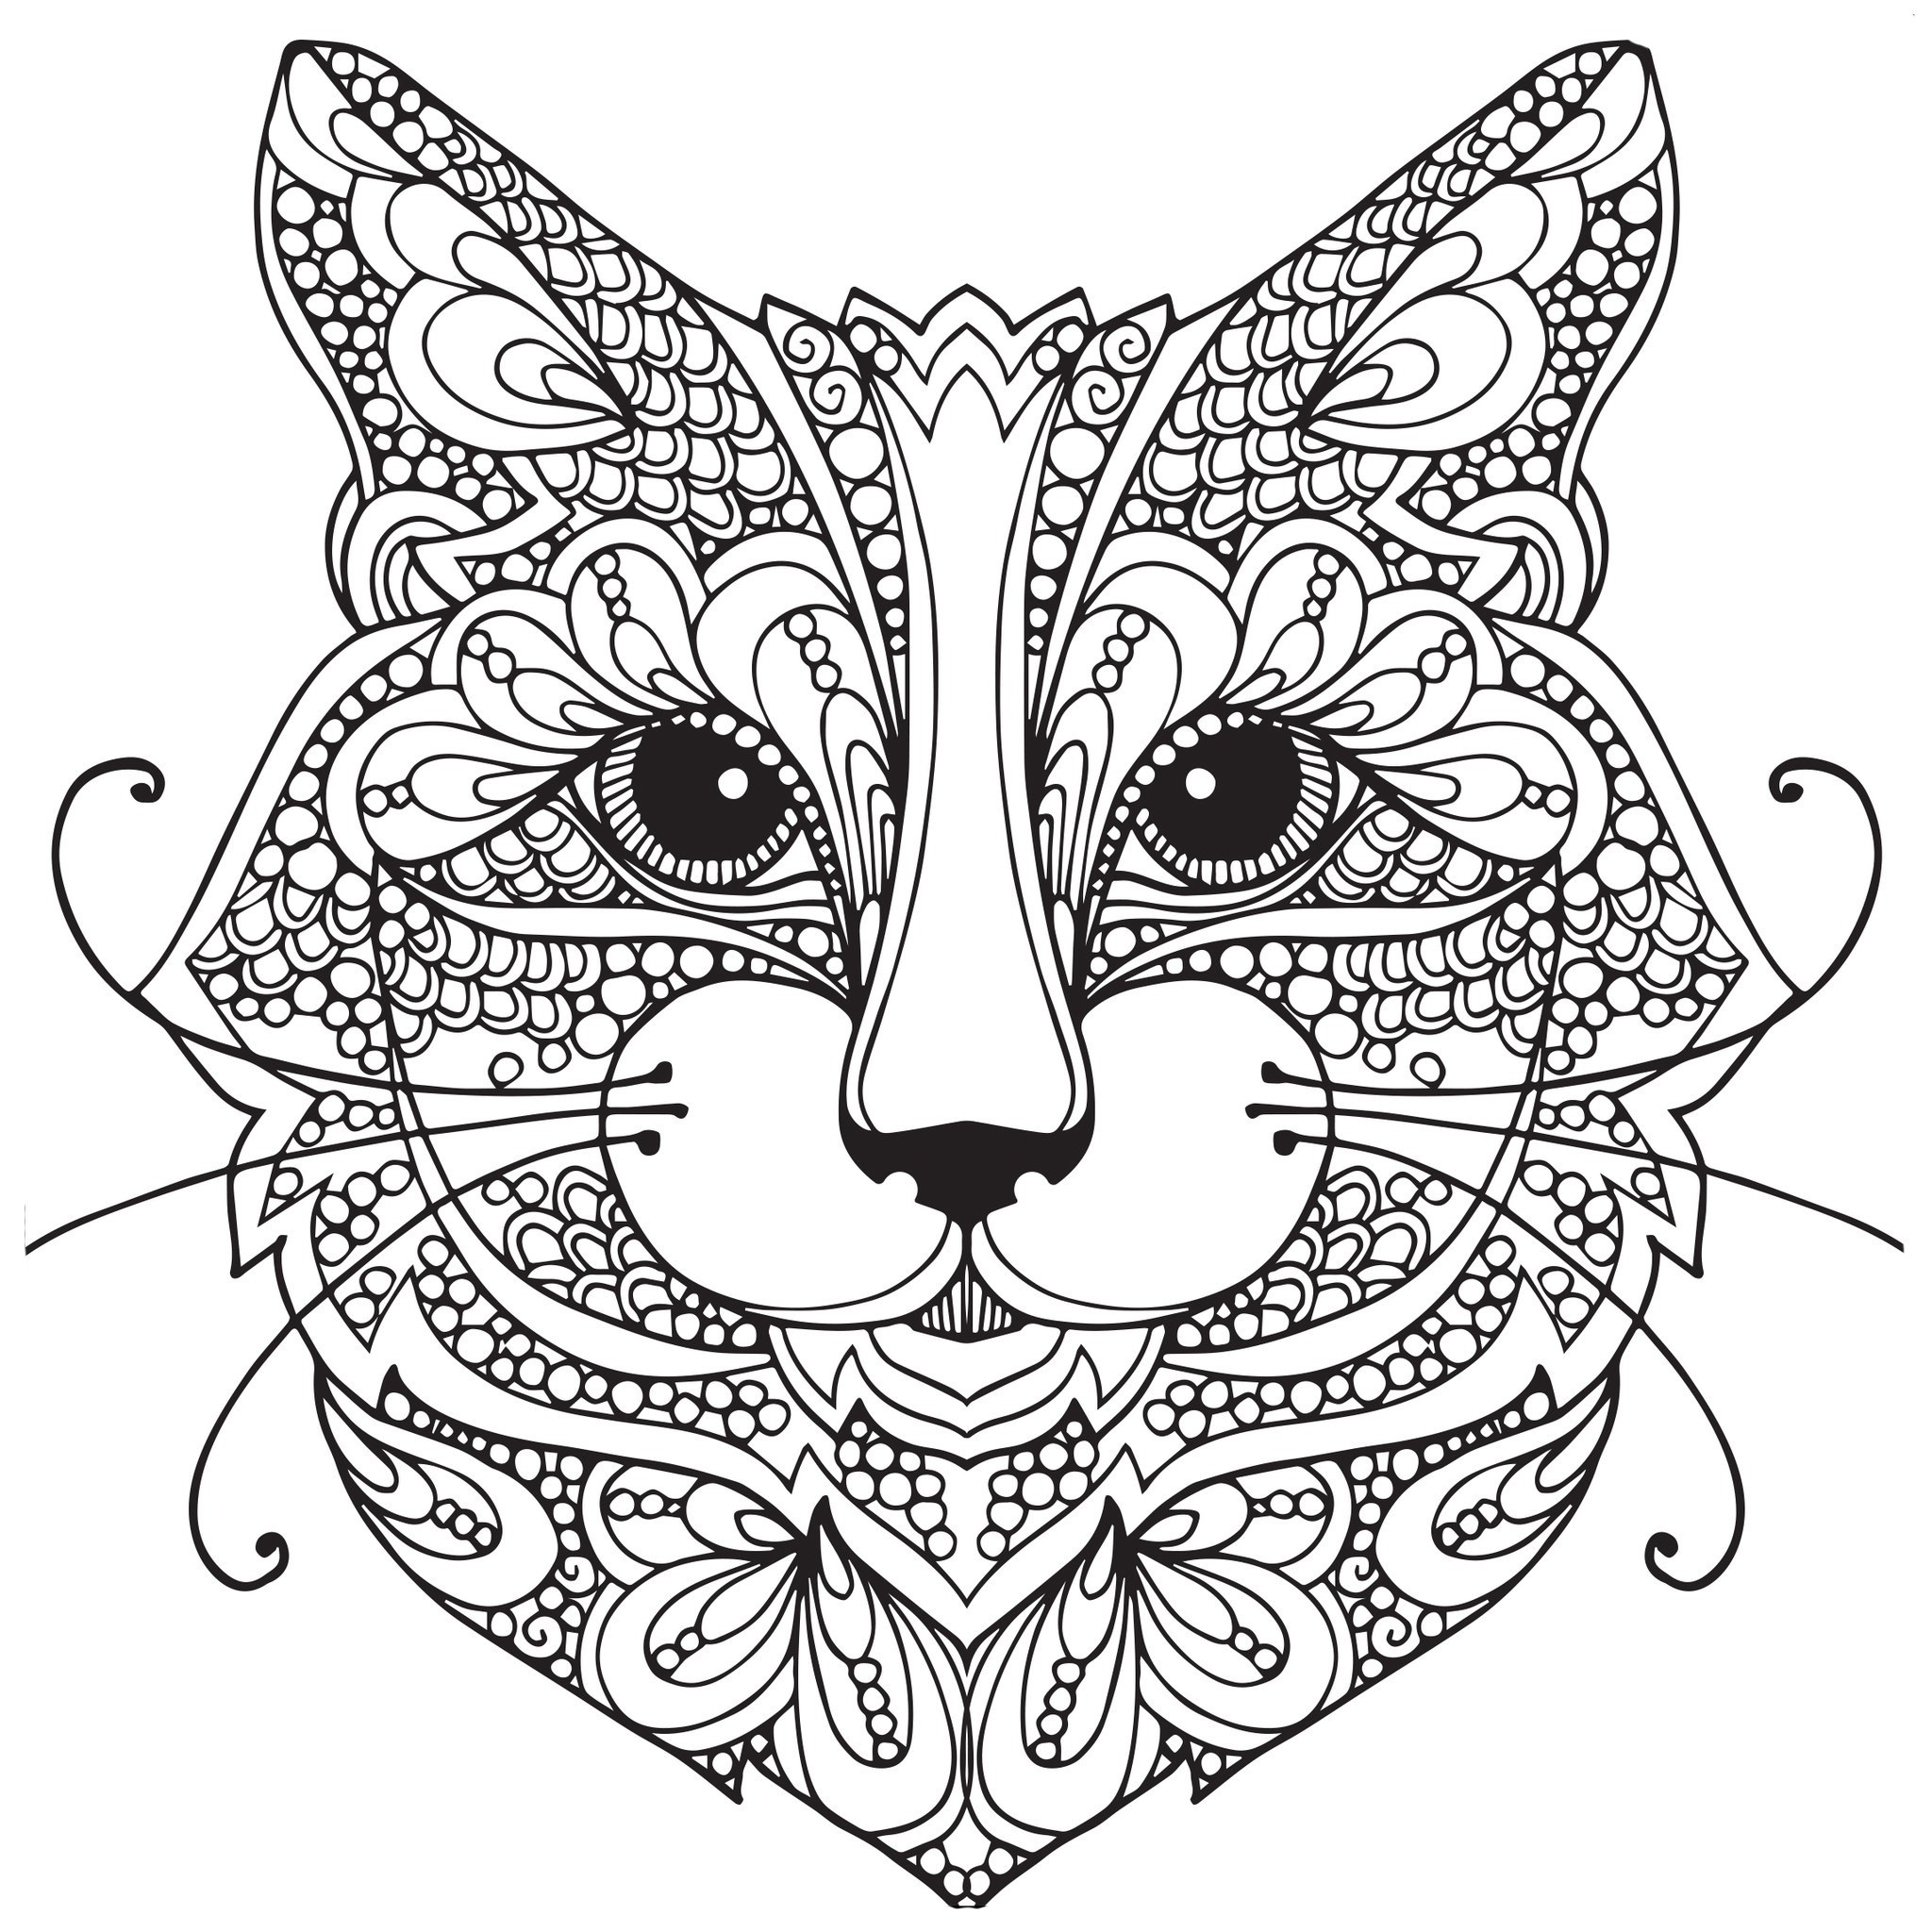 2048x2048 Cats Coloring Pages For Adults Wagashiya